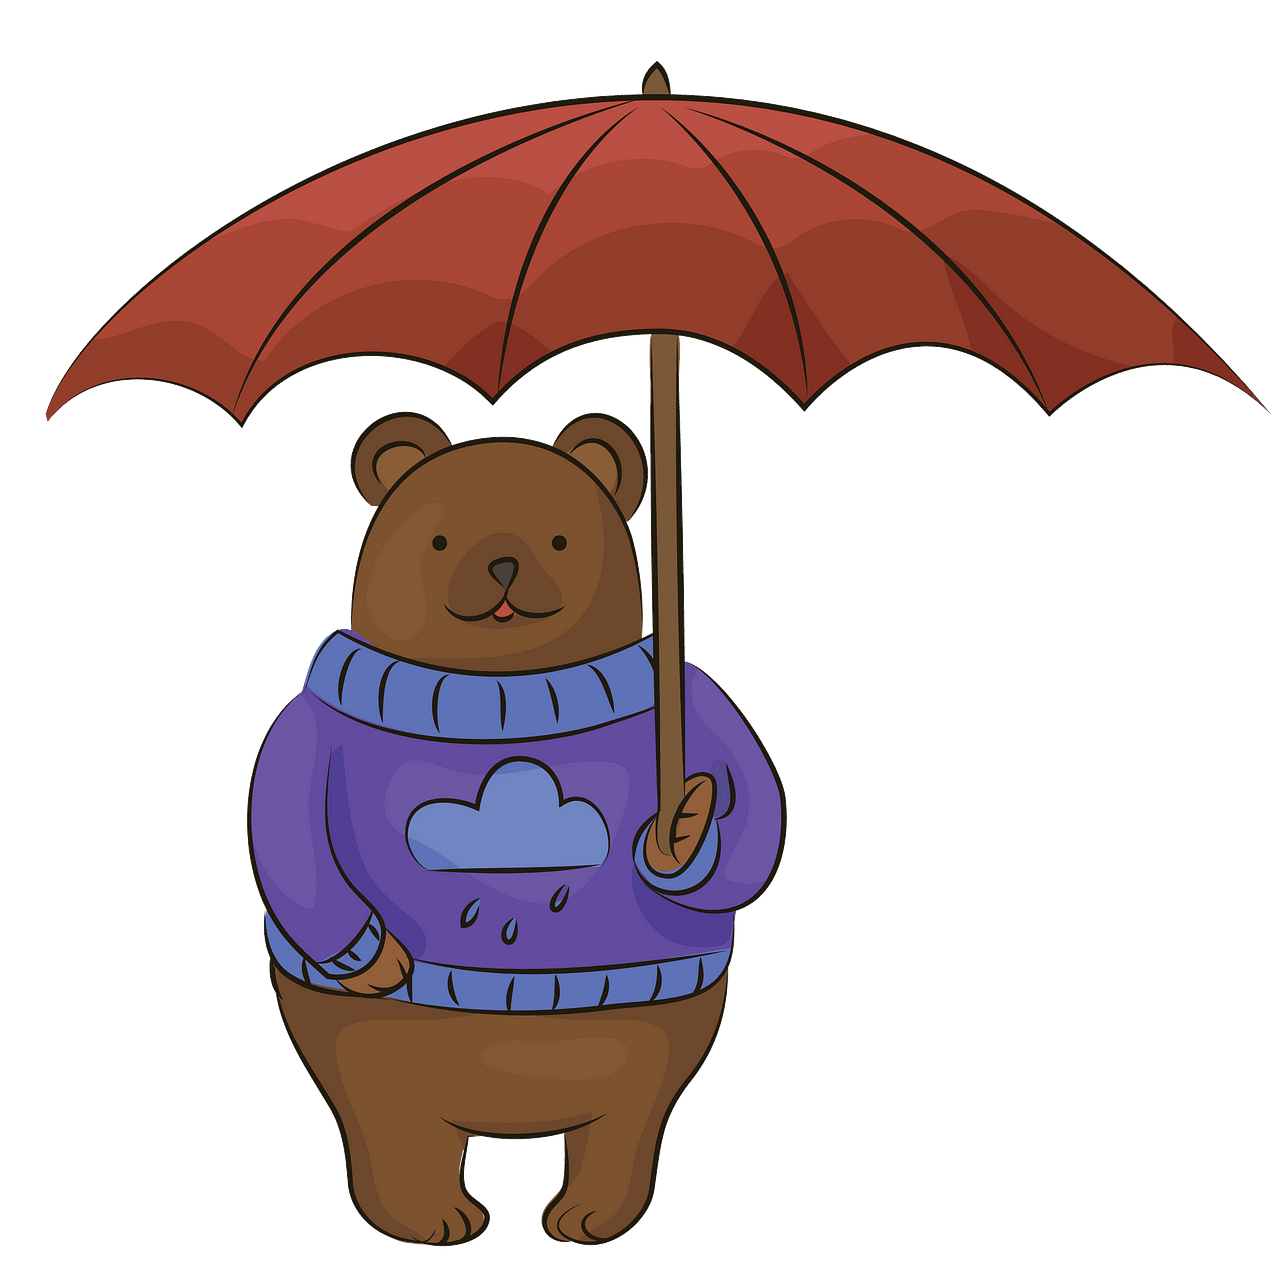 Bear with umbrella clipart. Free download..